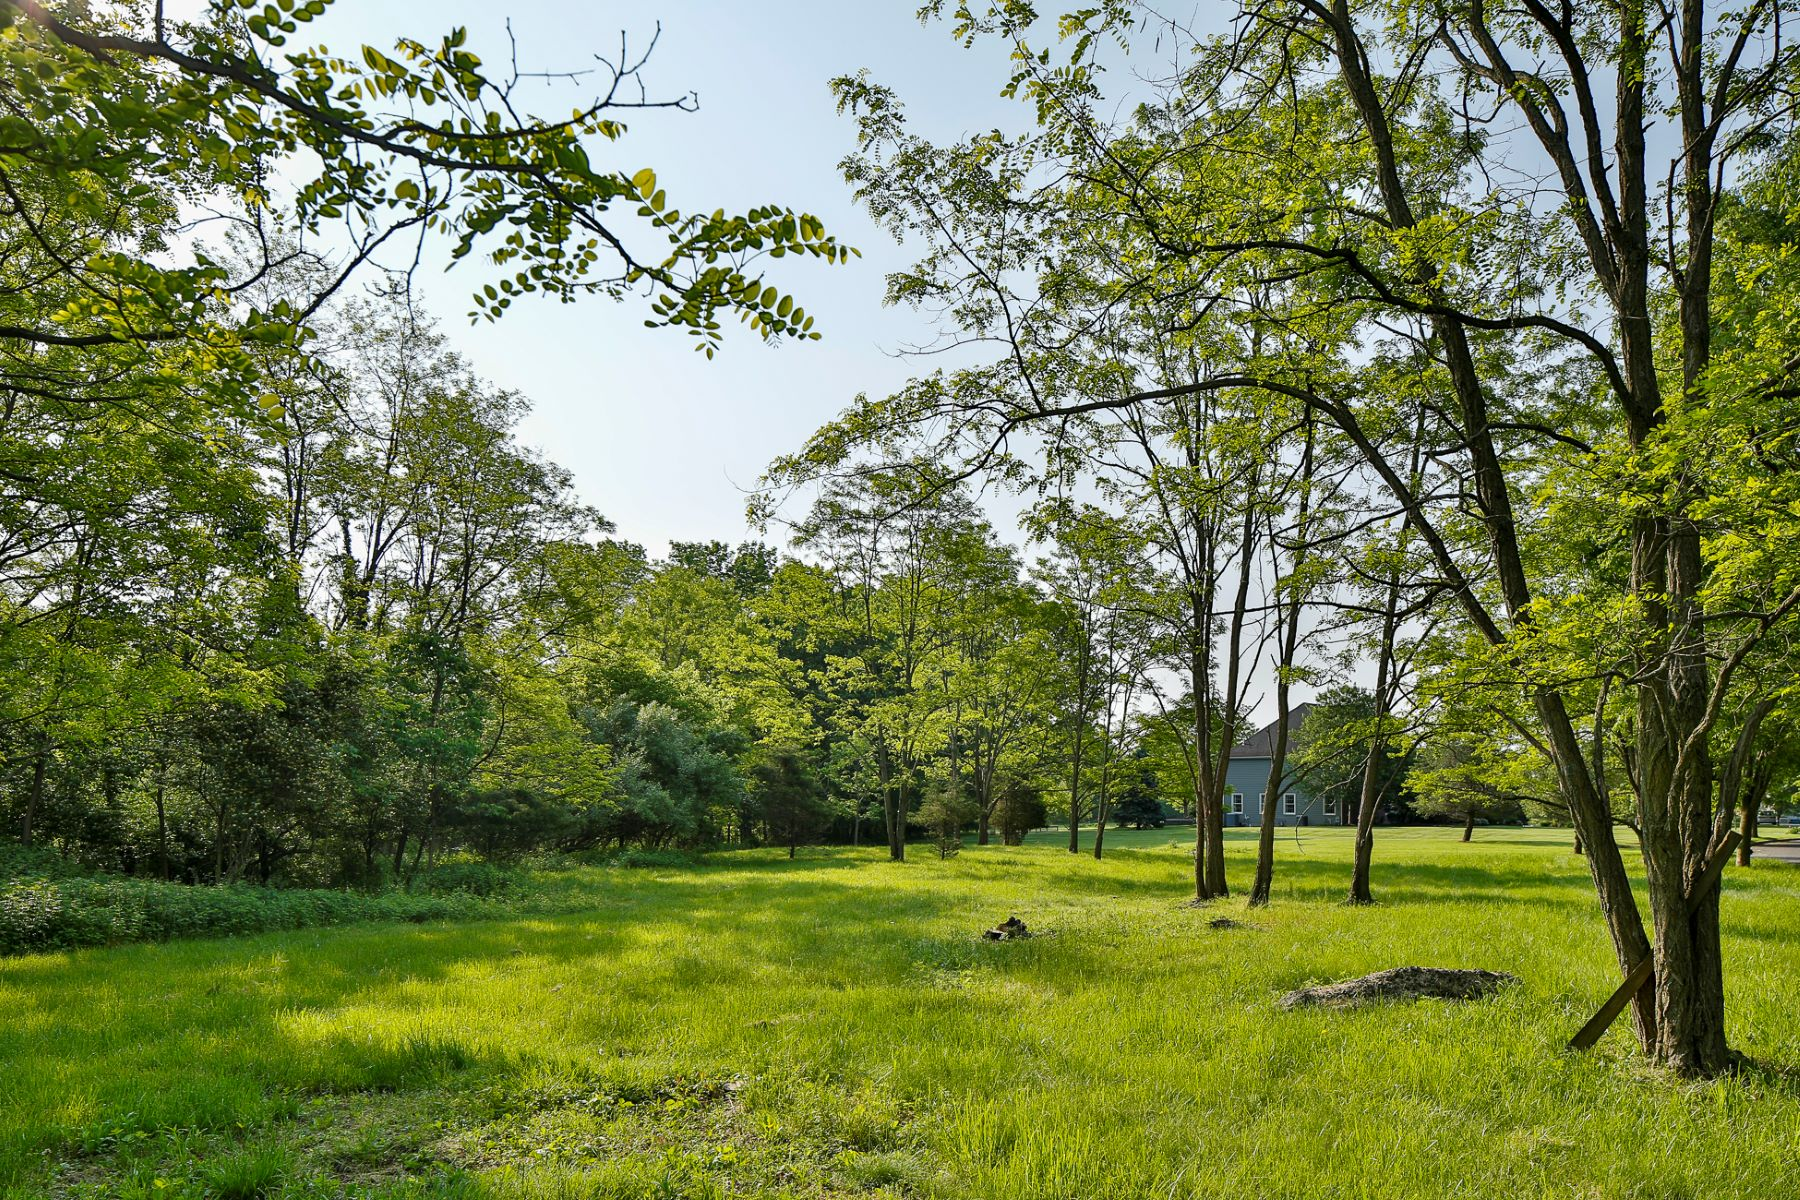 Additional photo for property listing at Ready to Build Lot in Lawrence Township 16 Buckingham Drive Princeton, Nueva Jersey 08540 Estados Unidos